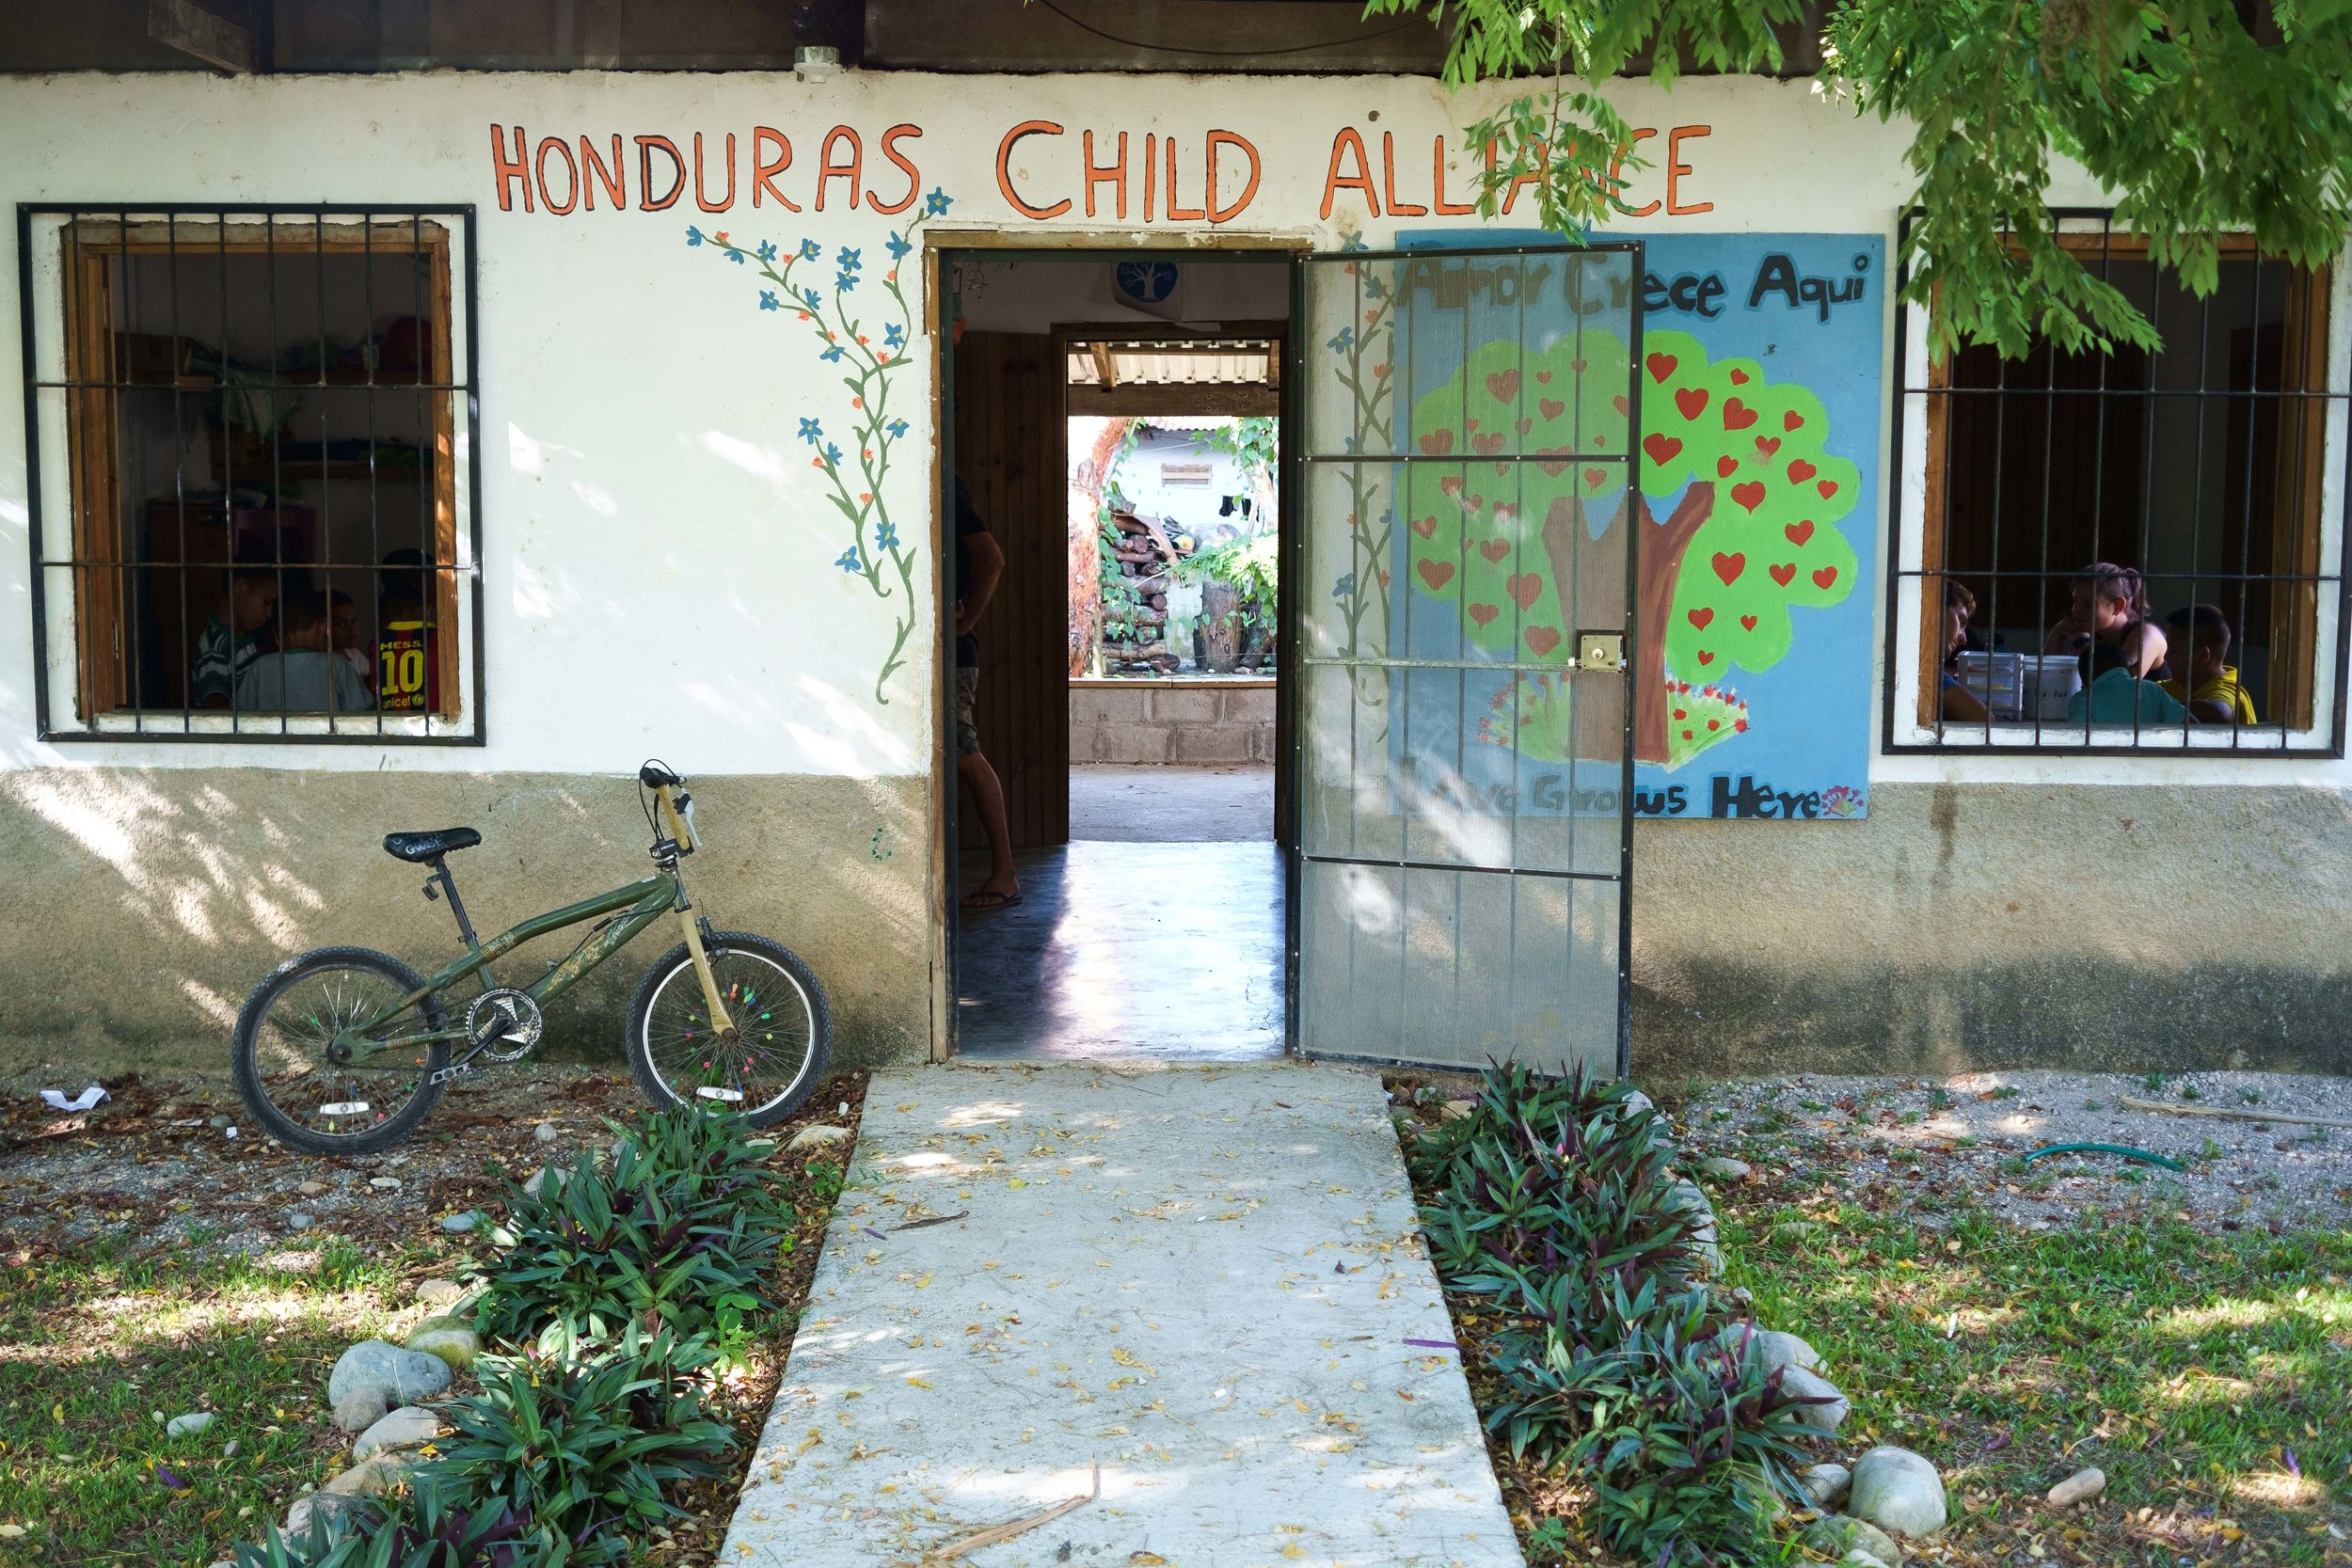 Photo by John Arthur Brown for Honduras Child Alliance